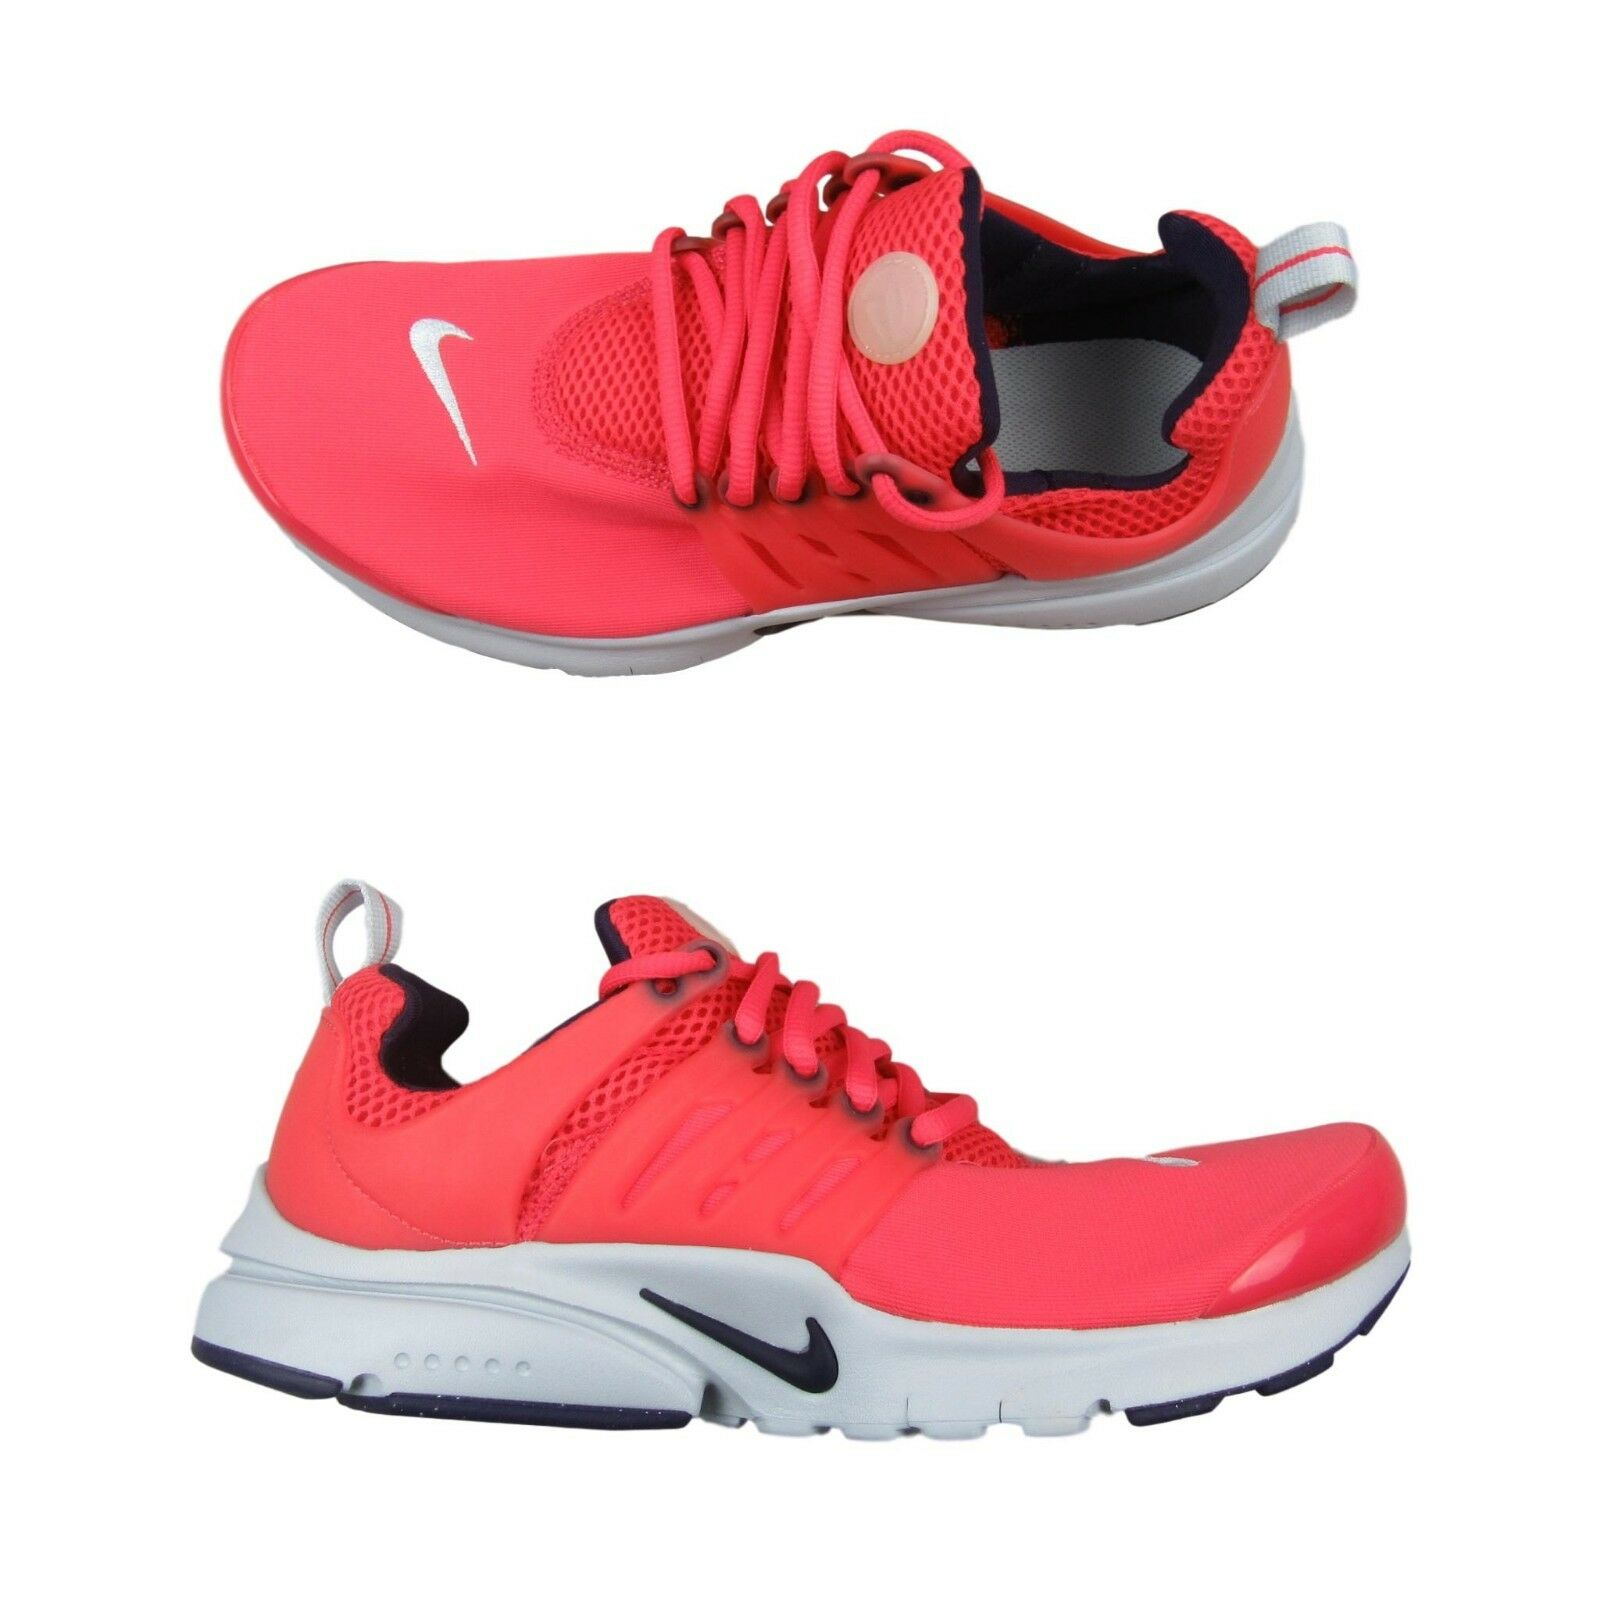 e84cb9e06a58 Nike Air Presto GS Ember Glow Running Shoes Size 7Y ~ Size 8.5 ...